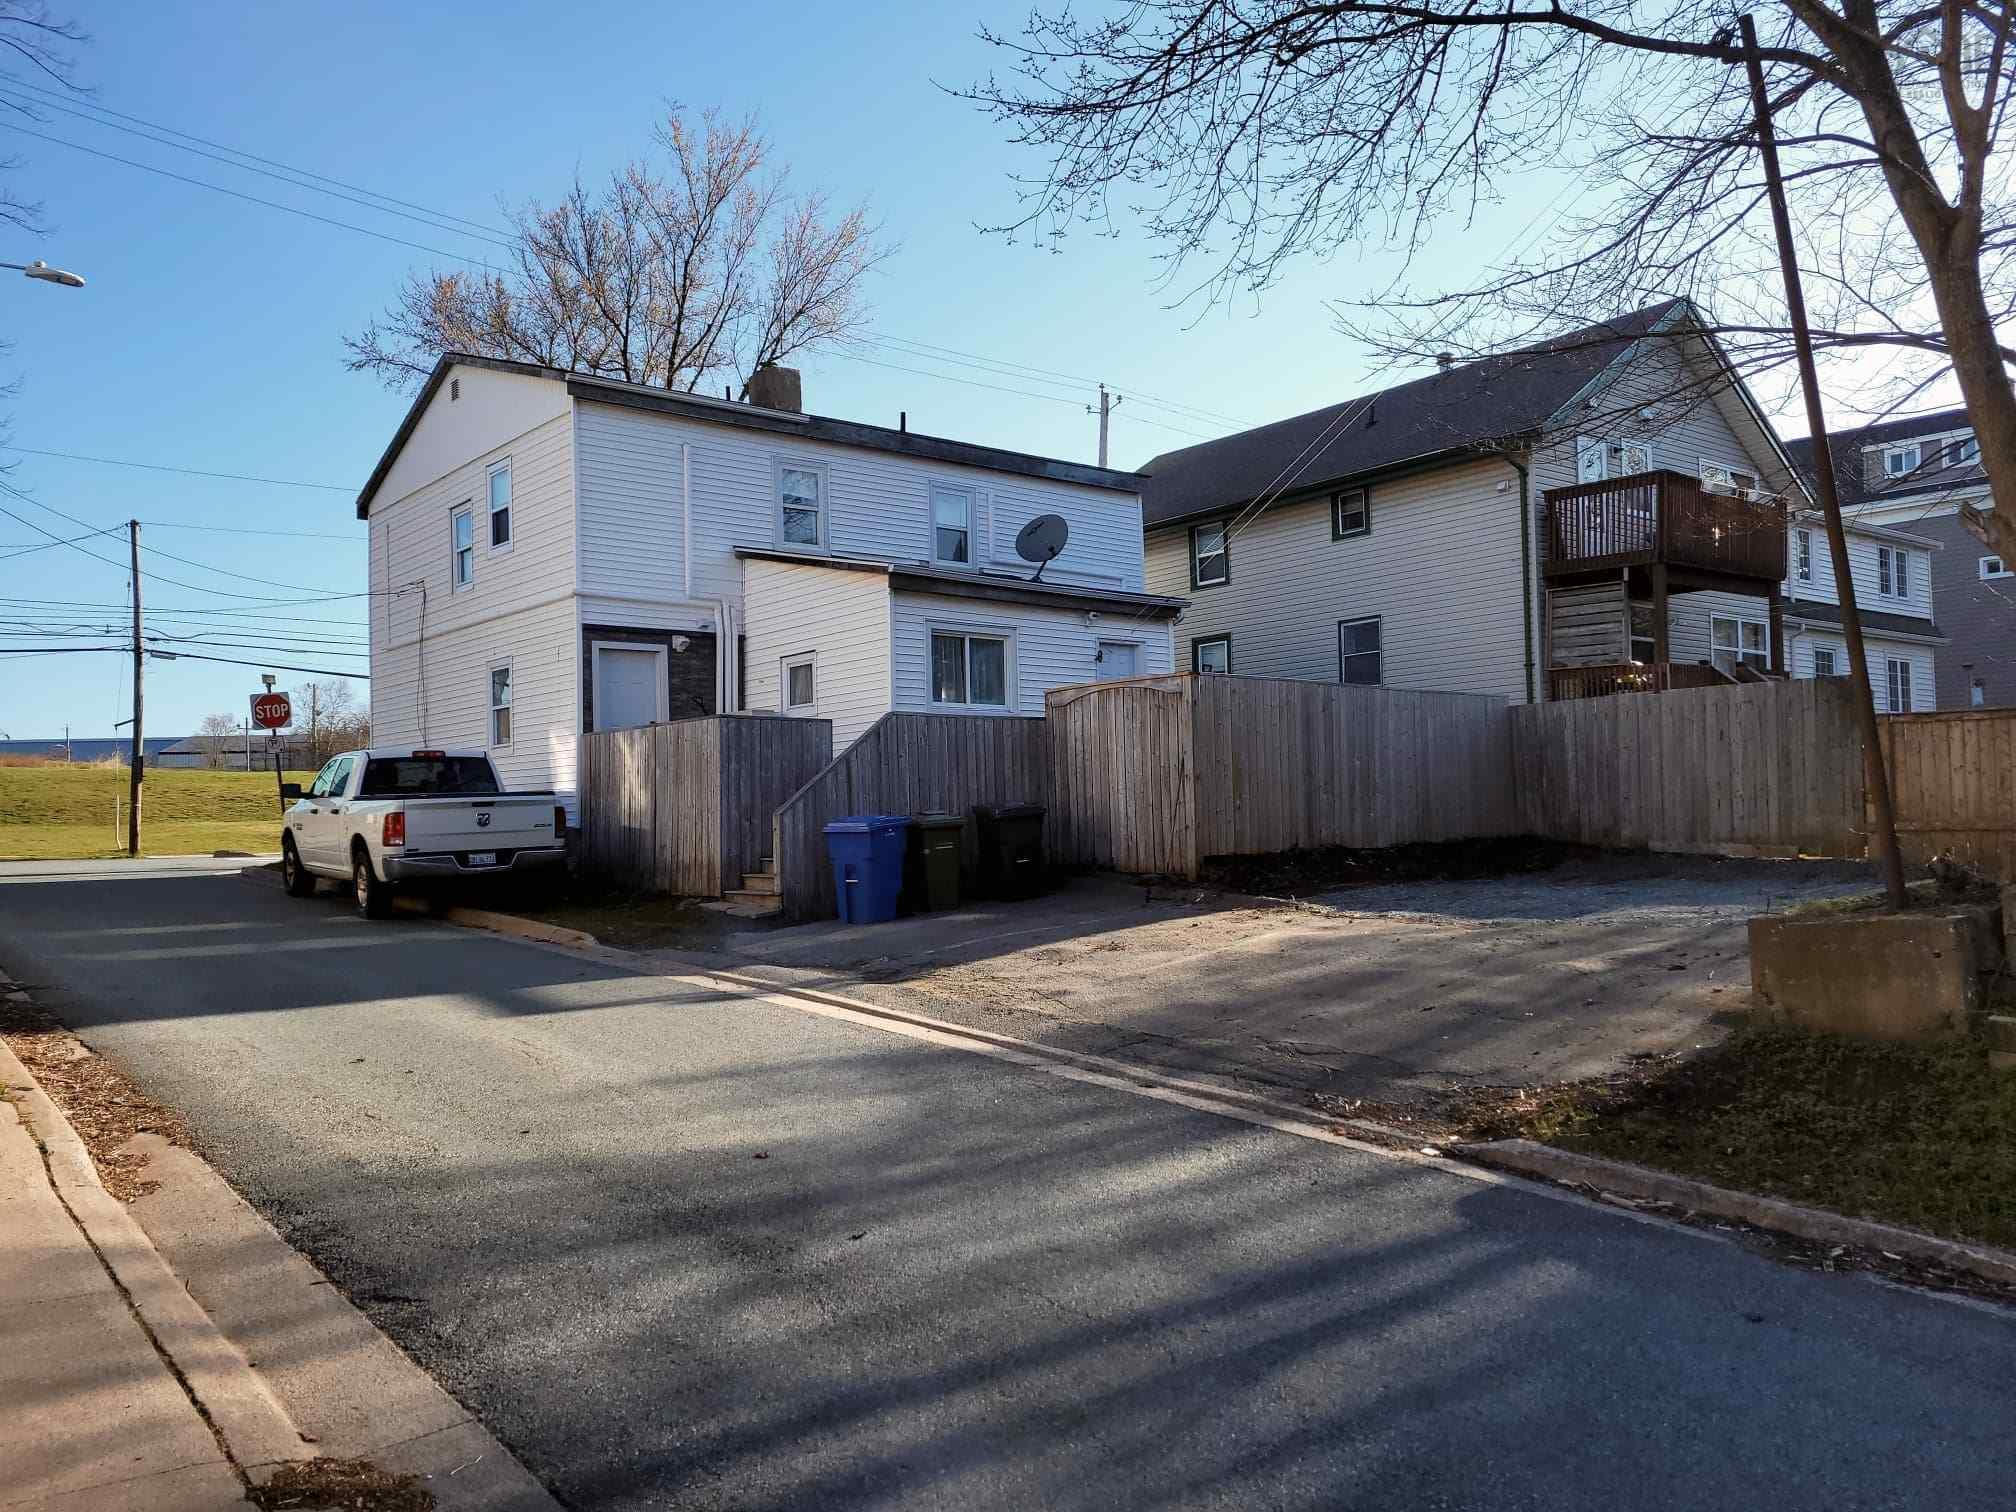 61/61A Windmill Road, Dartmouth, Halifax, NS, United States B3A 1C6, ,For Sale,61/61A Windmill Road,202109623